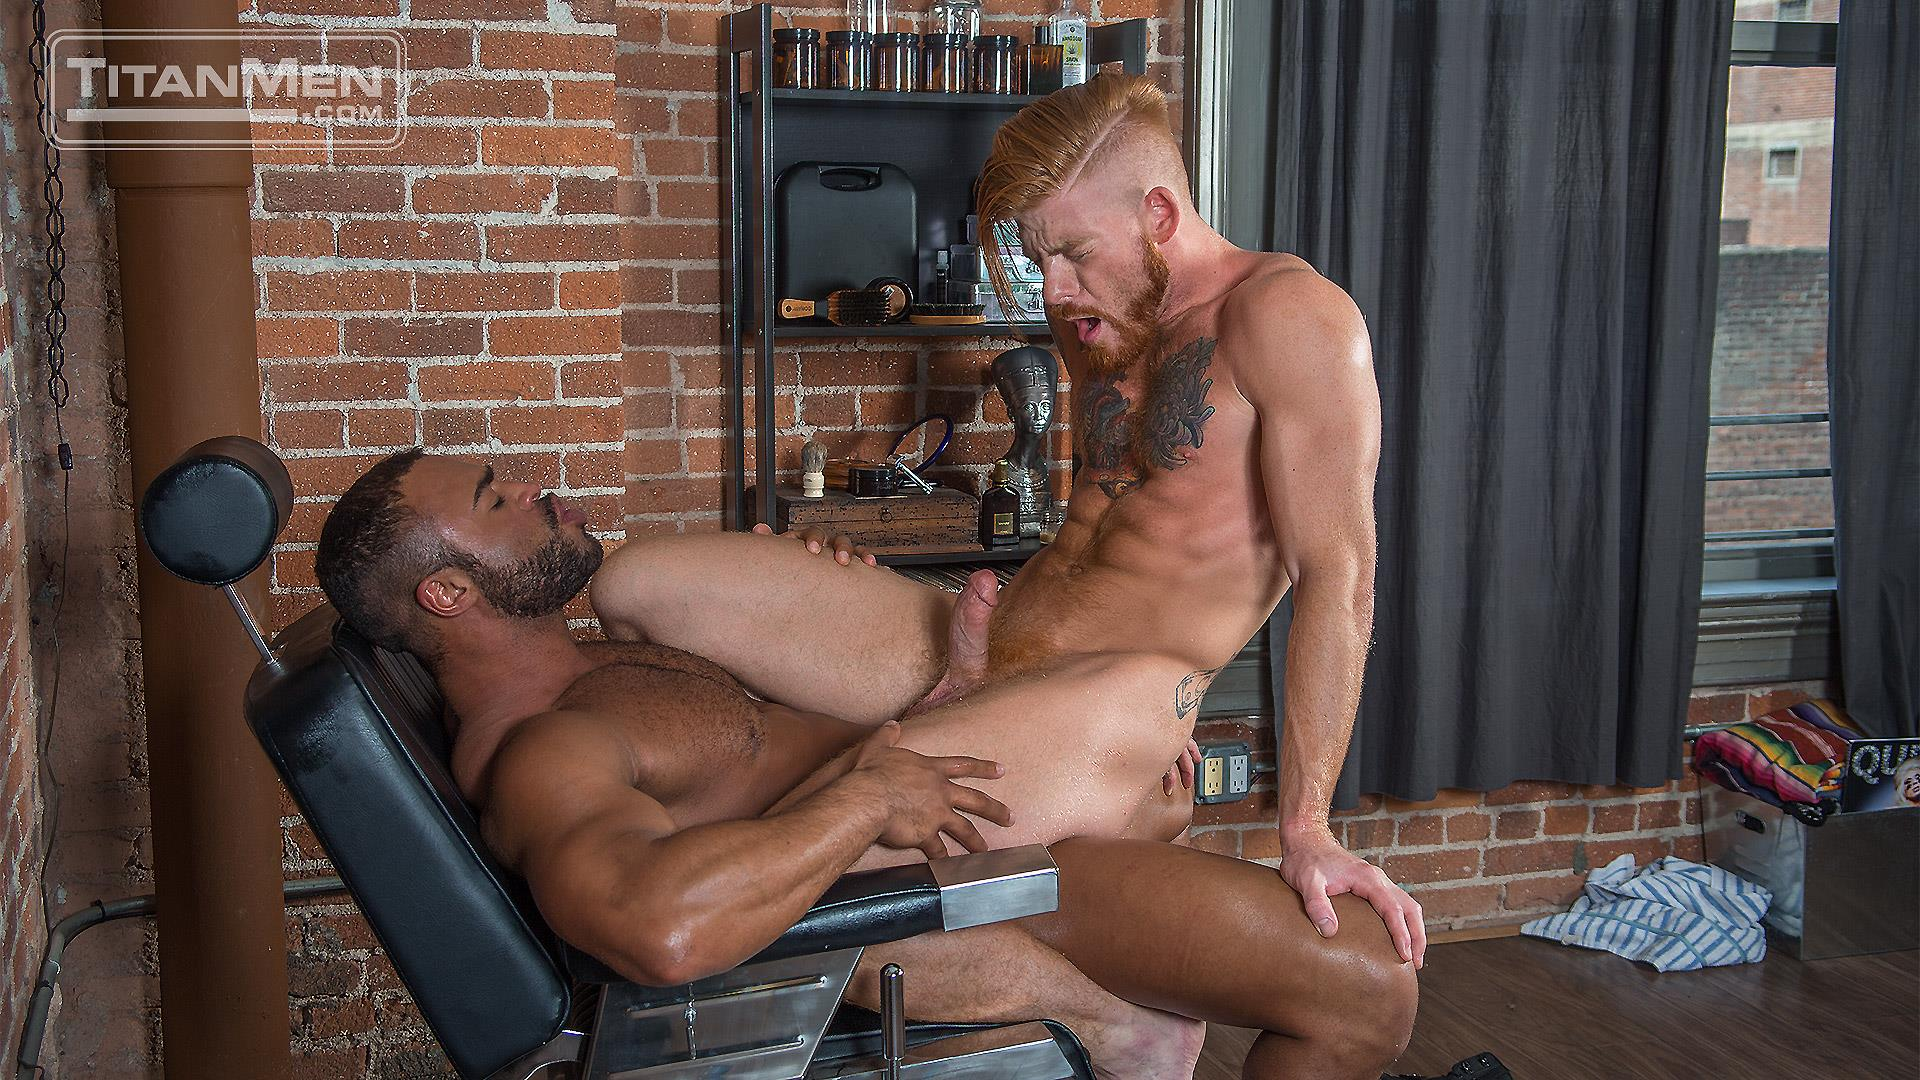 TitanMen Micah Brandt and Bennett Anthony Interracial Muscle Hunks Flip Fucking Amateur Gay Porn 19 Micah Brandt and Bennett Anthony Flip Fucking With Their Big Dicks